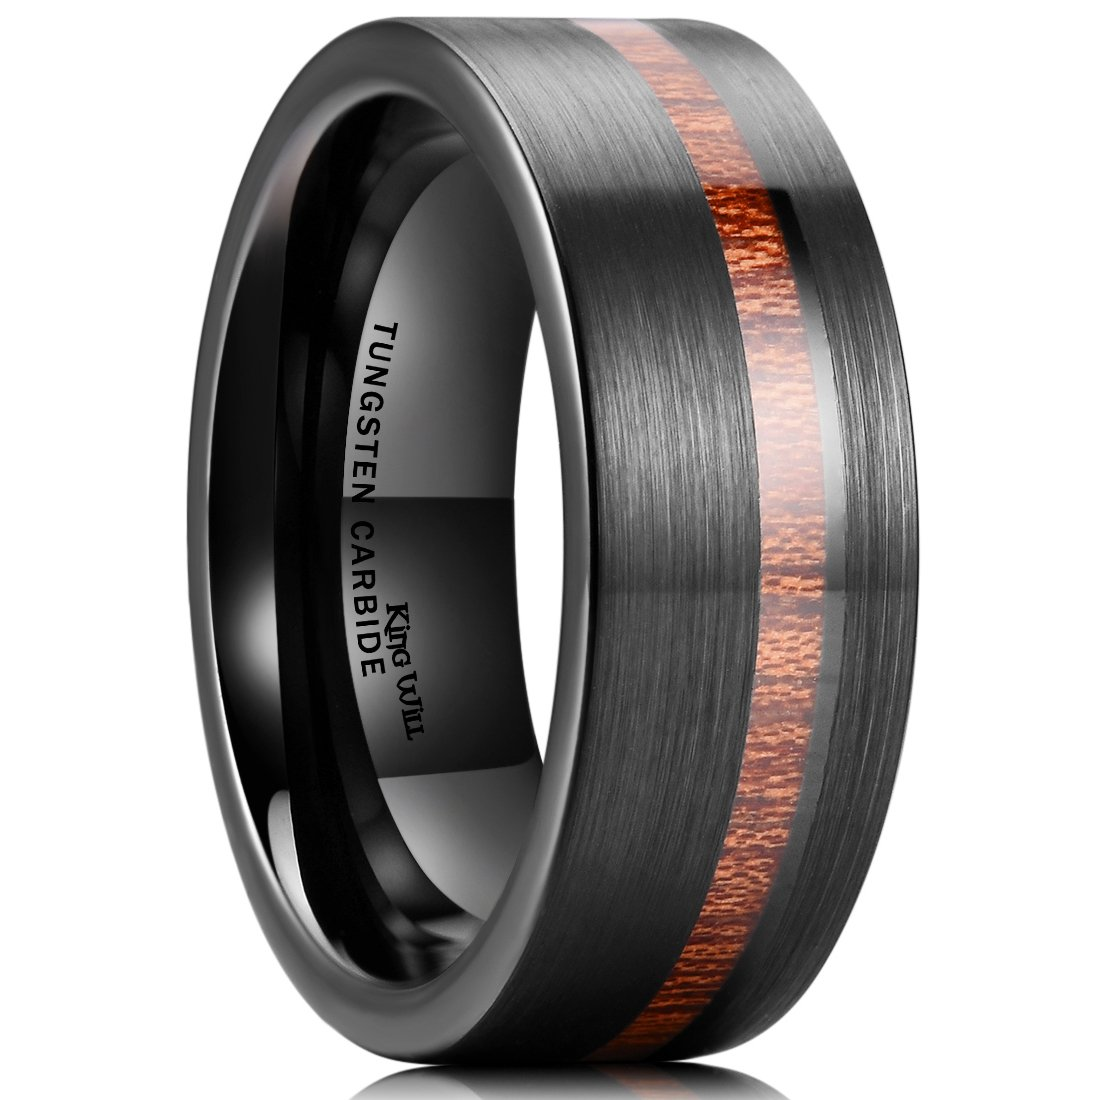 King Will Nature 8mm Wood Inlay Polish Unisex Black Tungsten Carbide Wedding Band Engagement Ring OY-R035-VARIATION